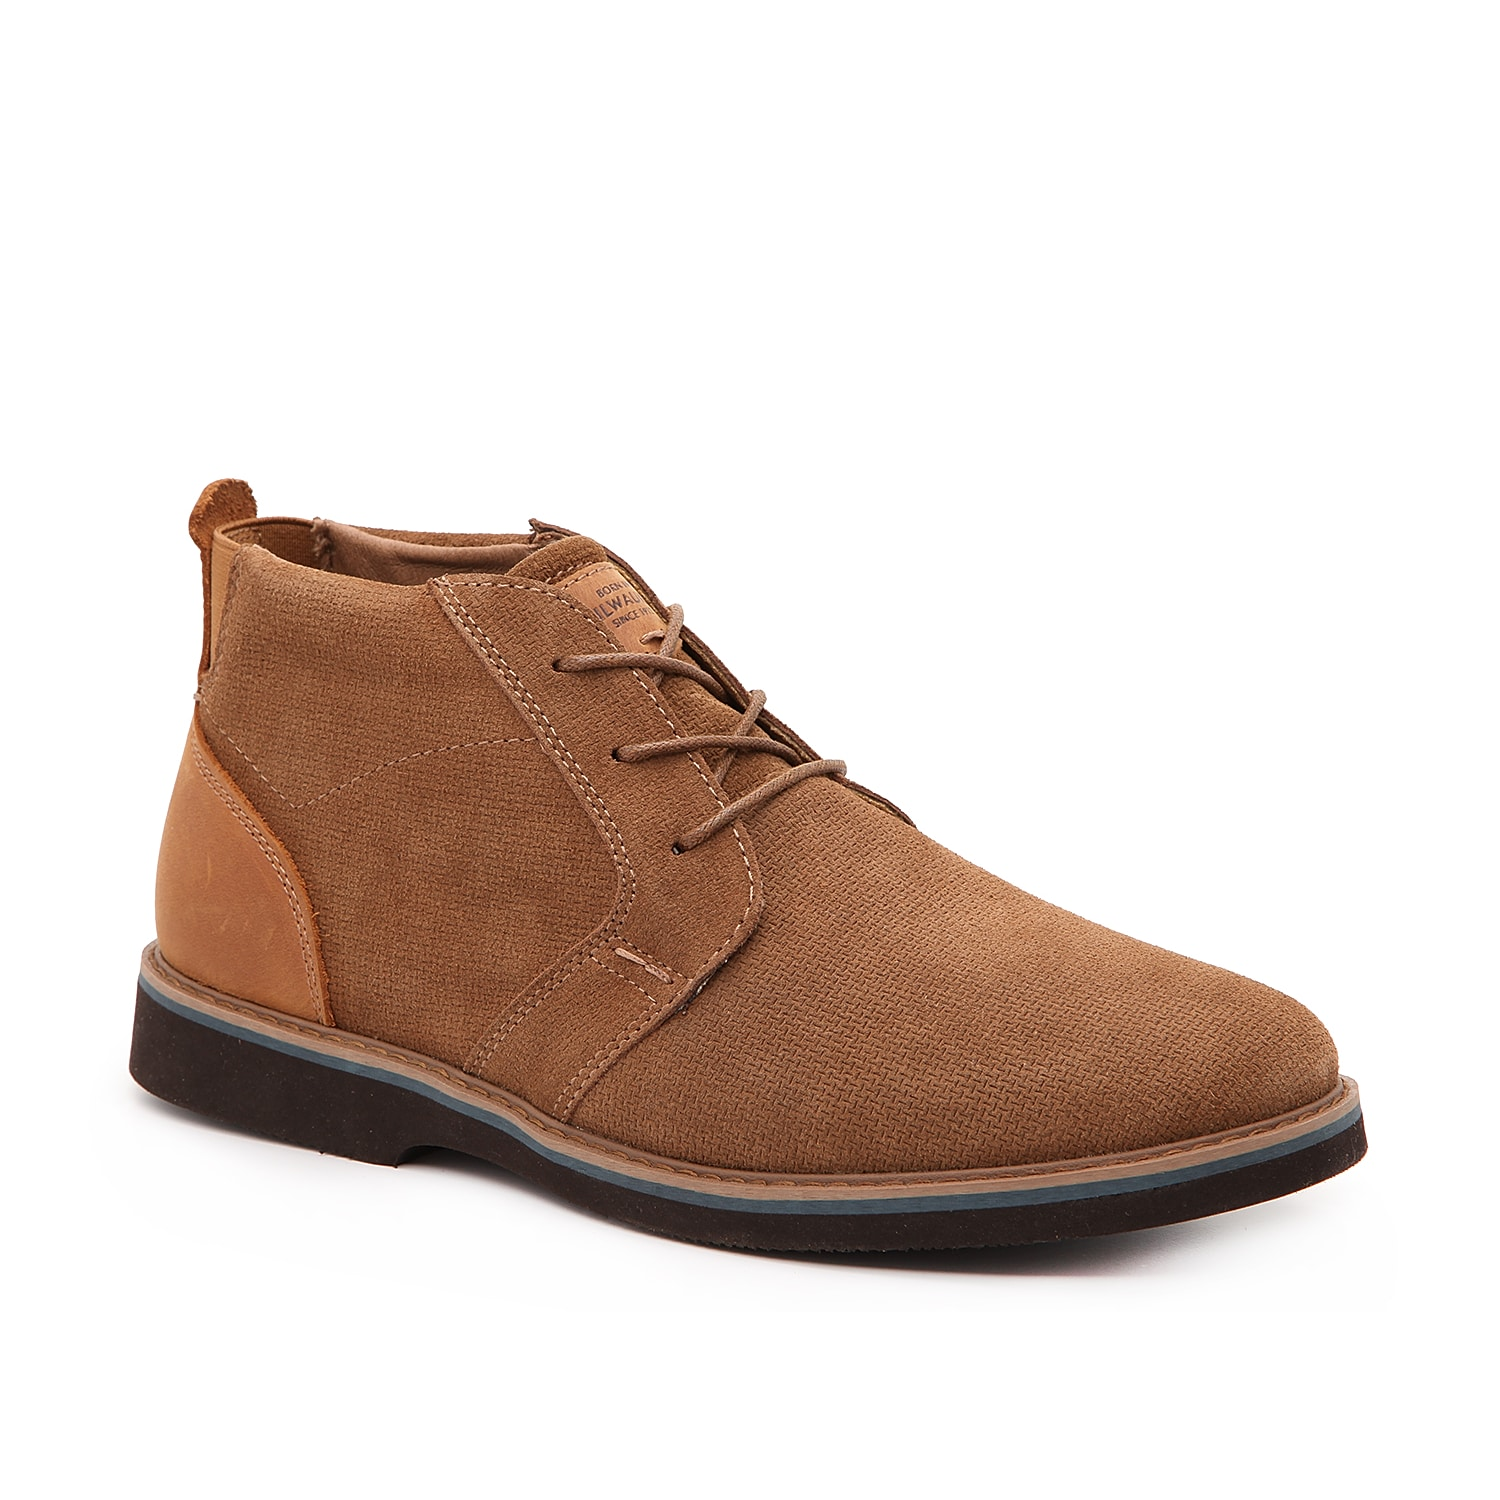 Streamline your style with the Barklay boot from Nunn Bush. This chukka-inspired pair features a suede construction and is backed by a Comfort Gel memory foam cushioned footbed to keep feet feeling great.